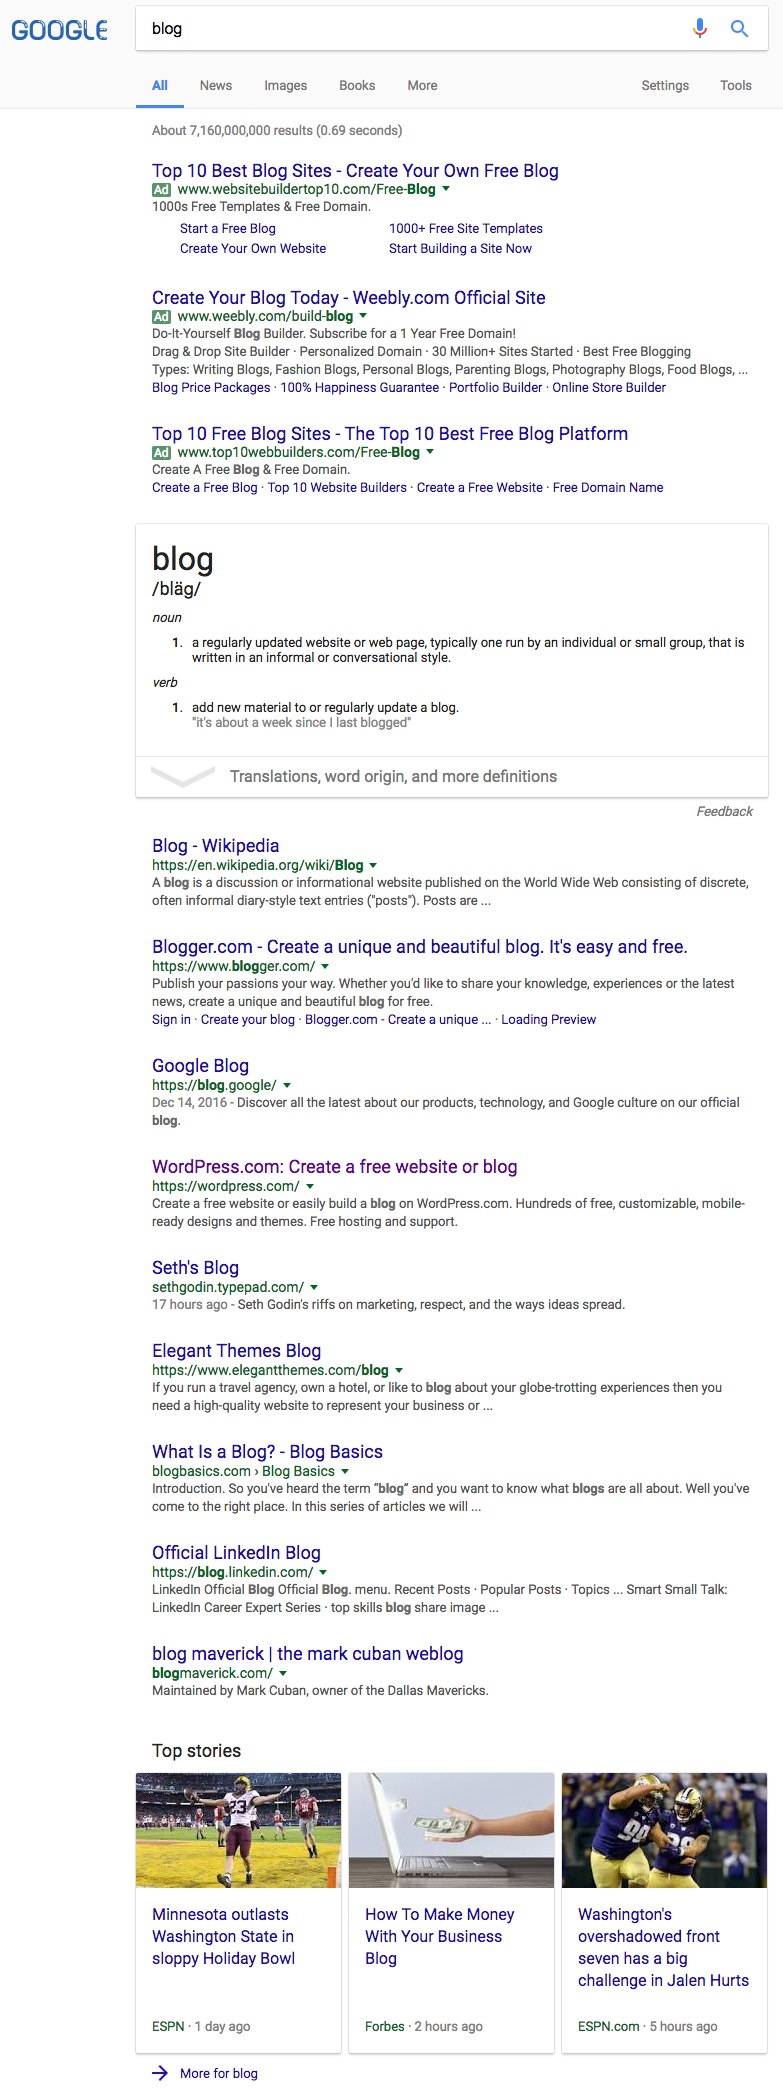 blog search results.png